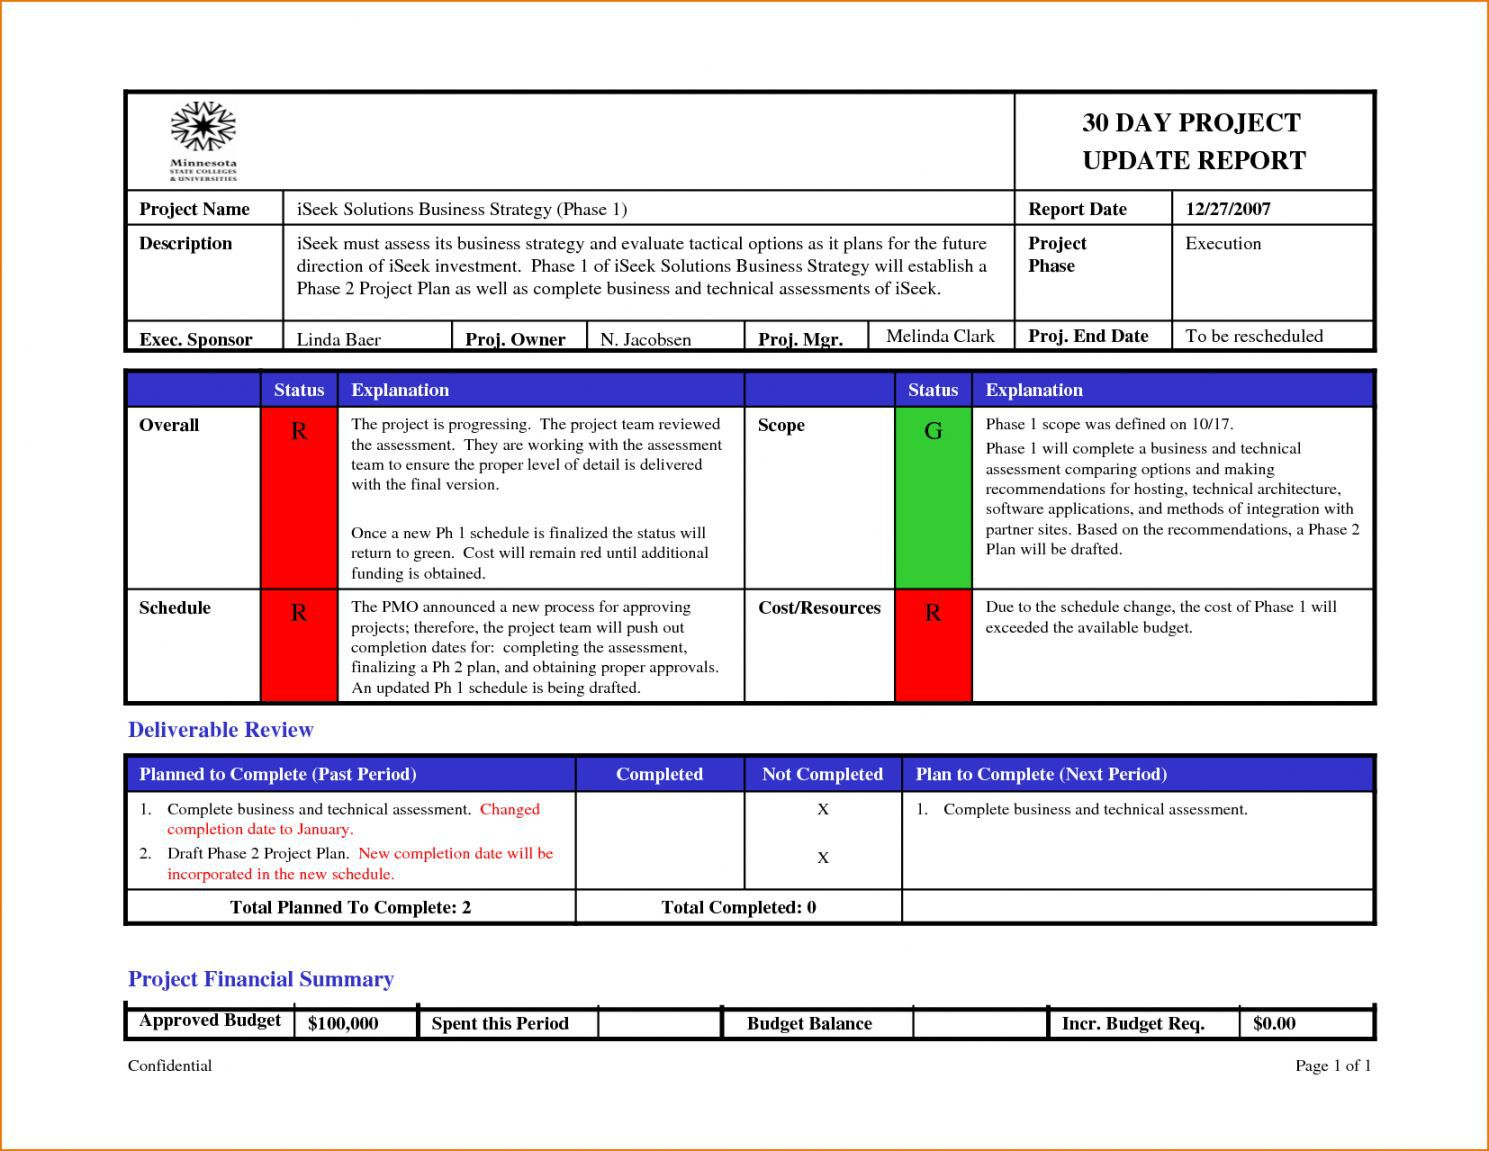 002 Wonderful Project Management Progres Report Template Picture  Statu Ppt WeeklyFull